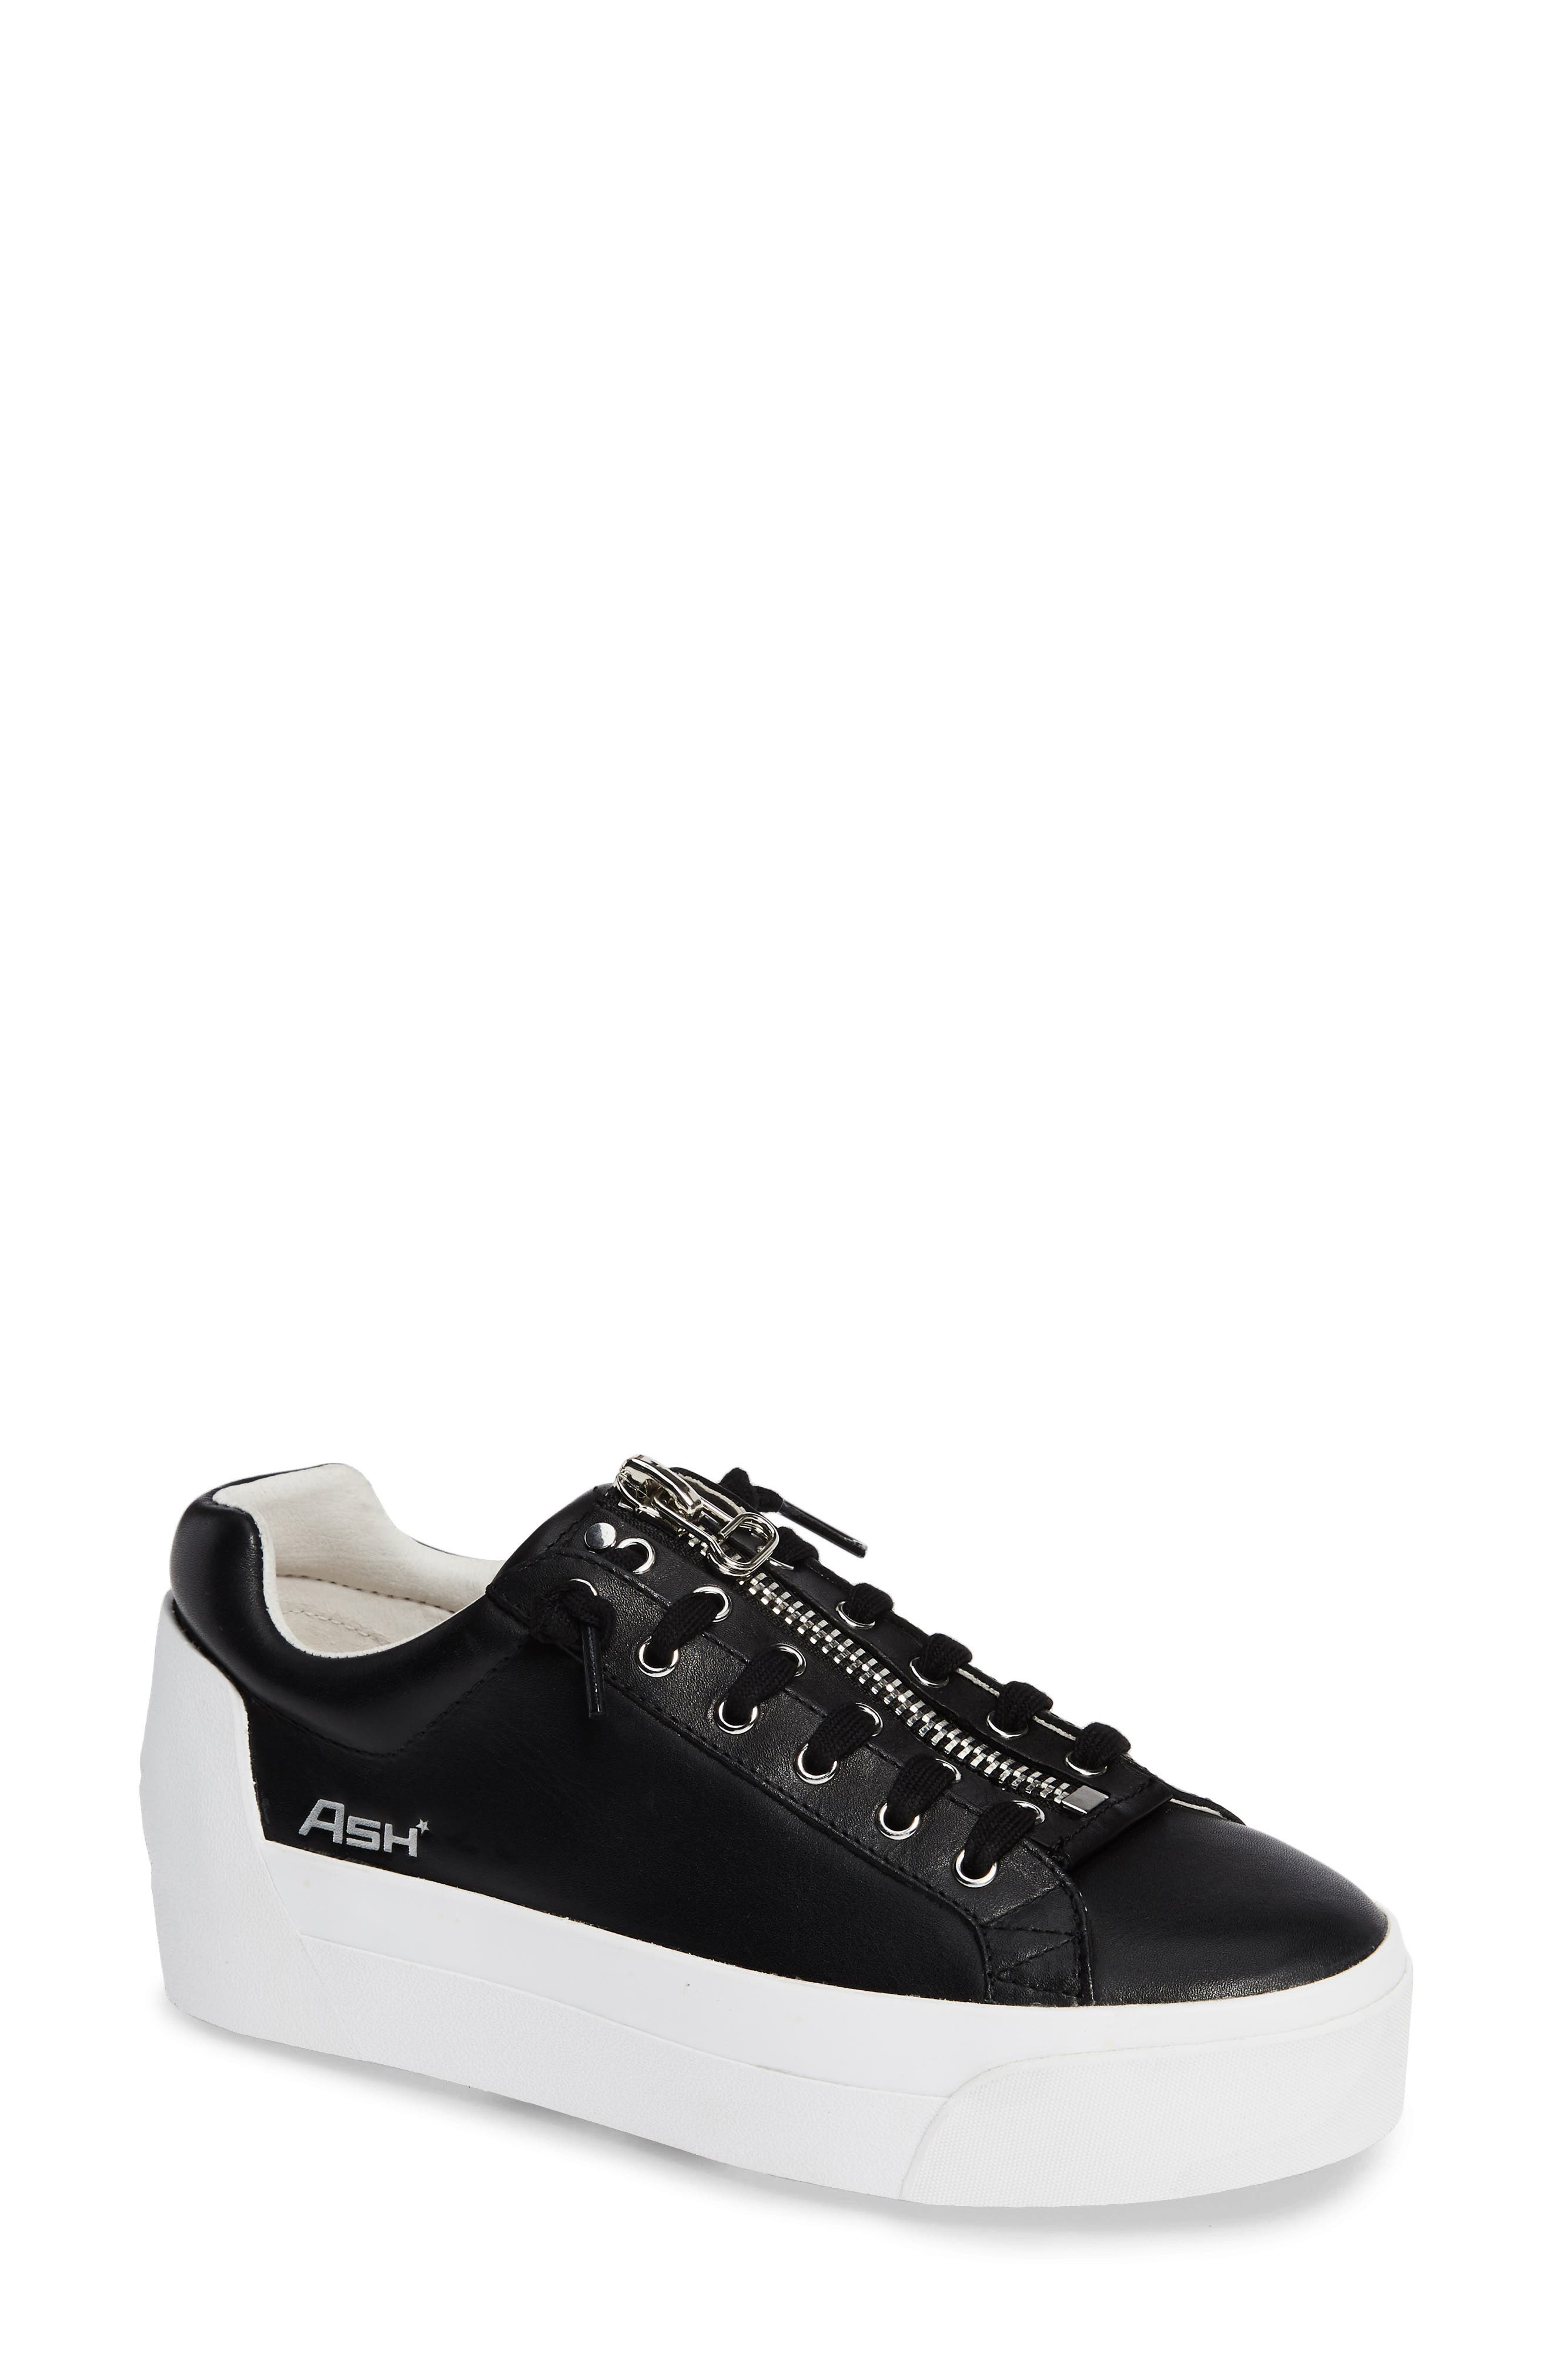 Buzz Leather Flatform Creepers in Black - Black